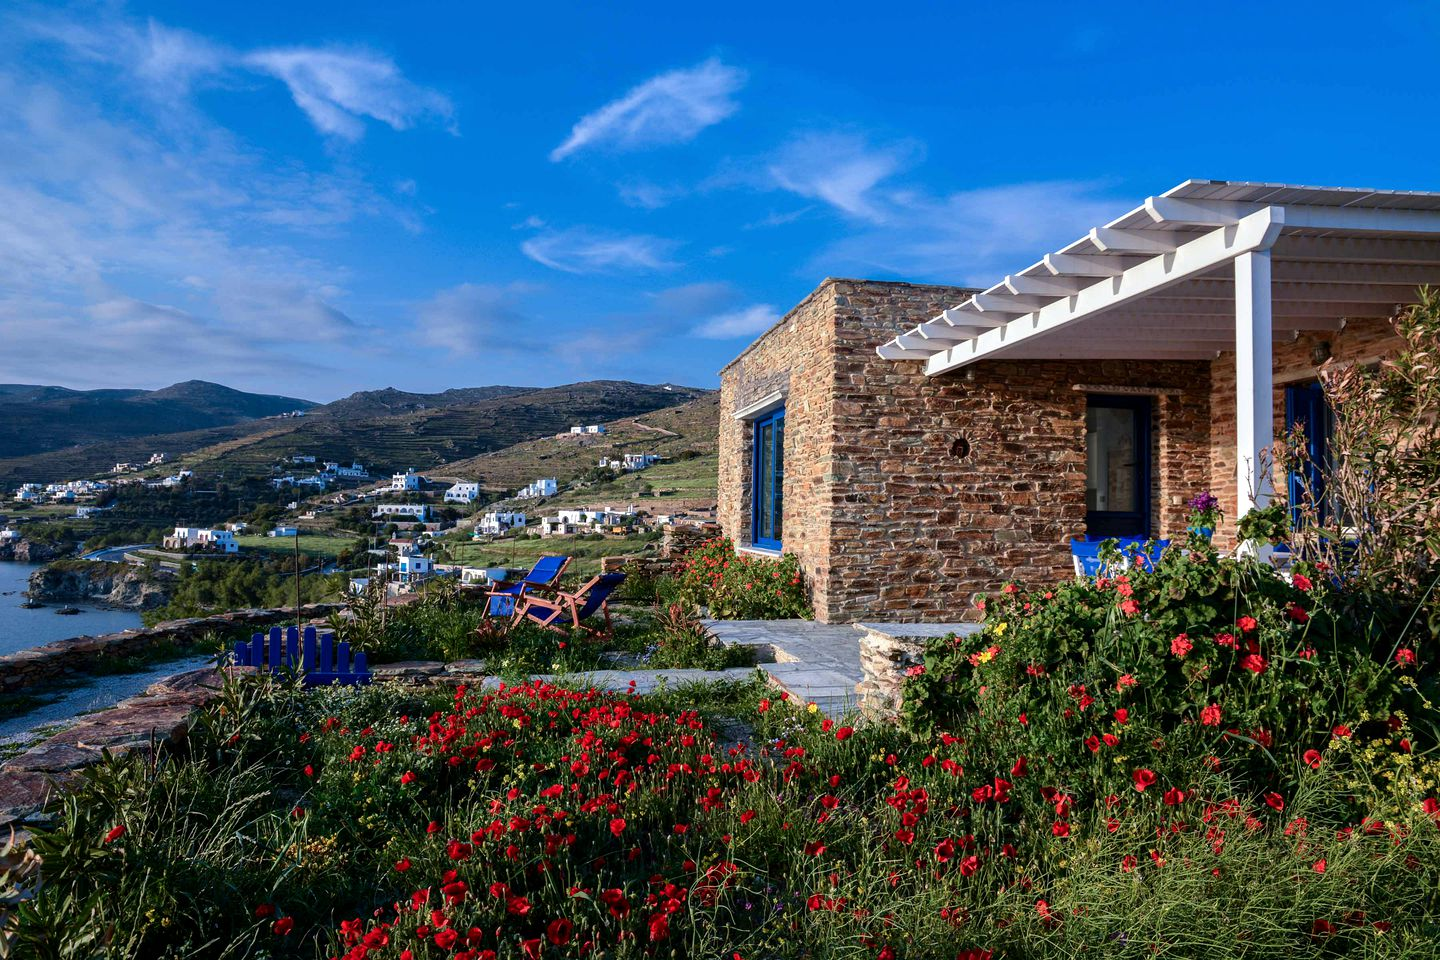 Cottages (Tinos, Southern Aegean, Greece)